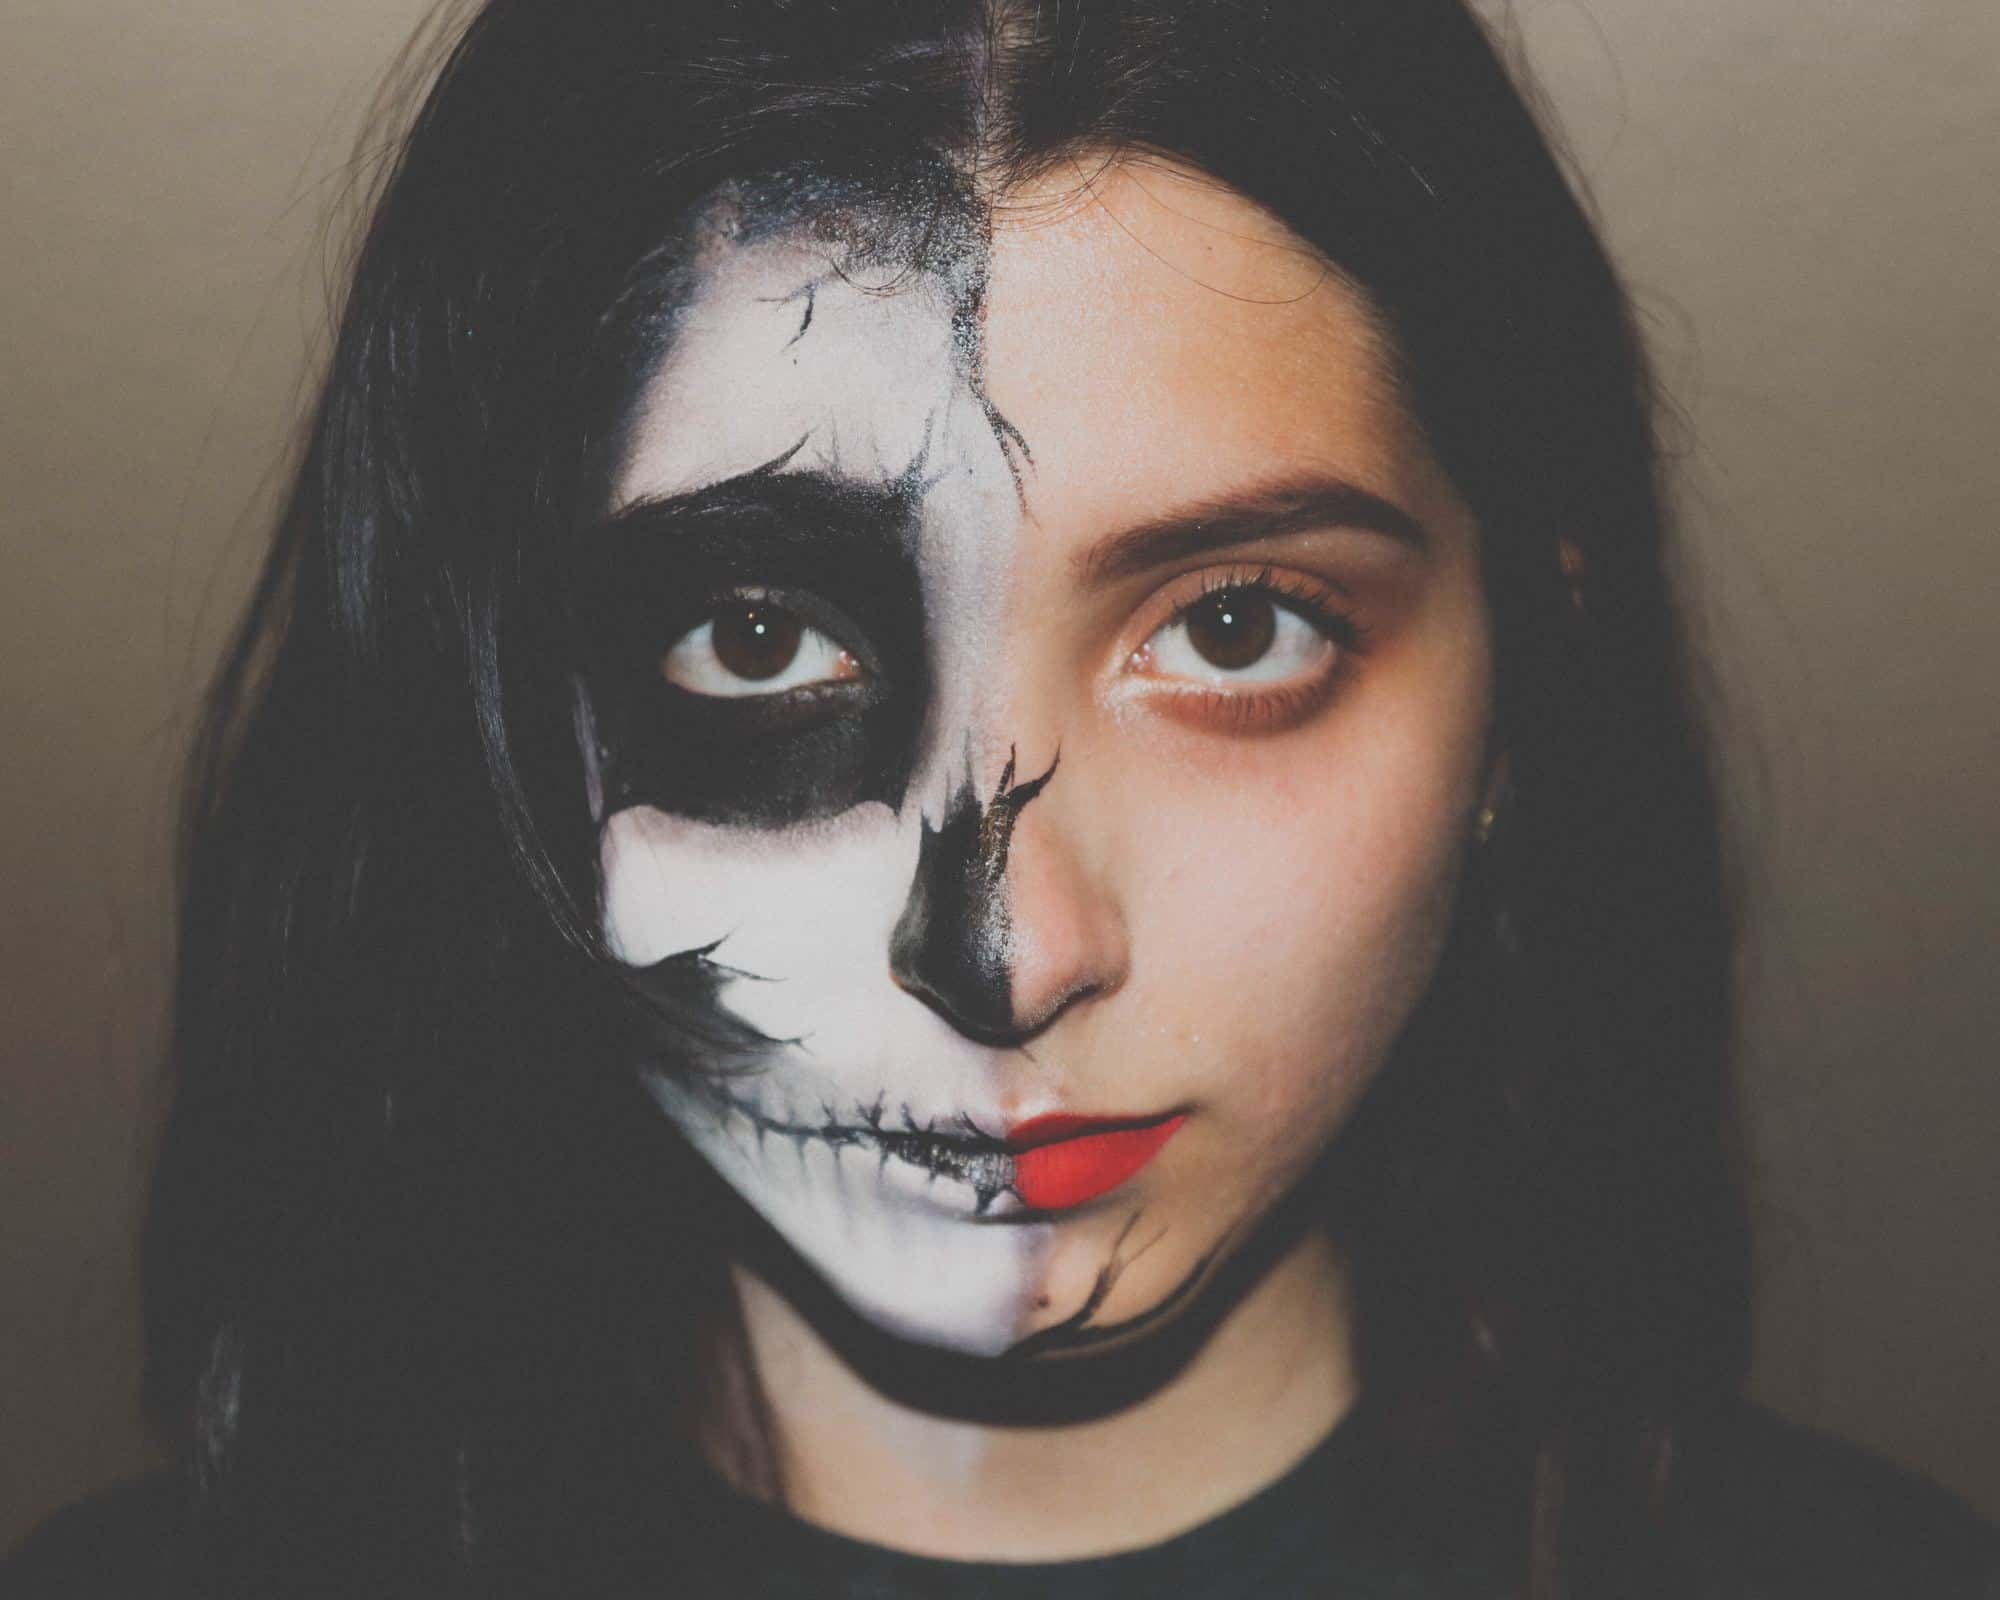 How healthy is your mind? a girl with the left half of her face made up to appear like a skull